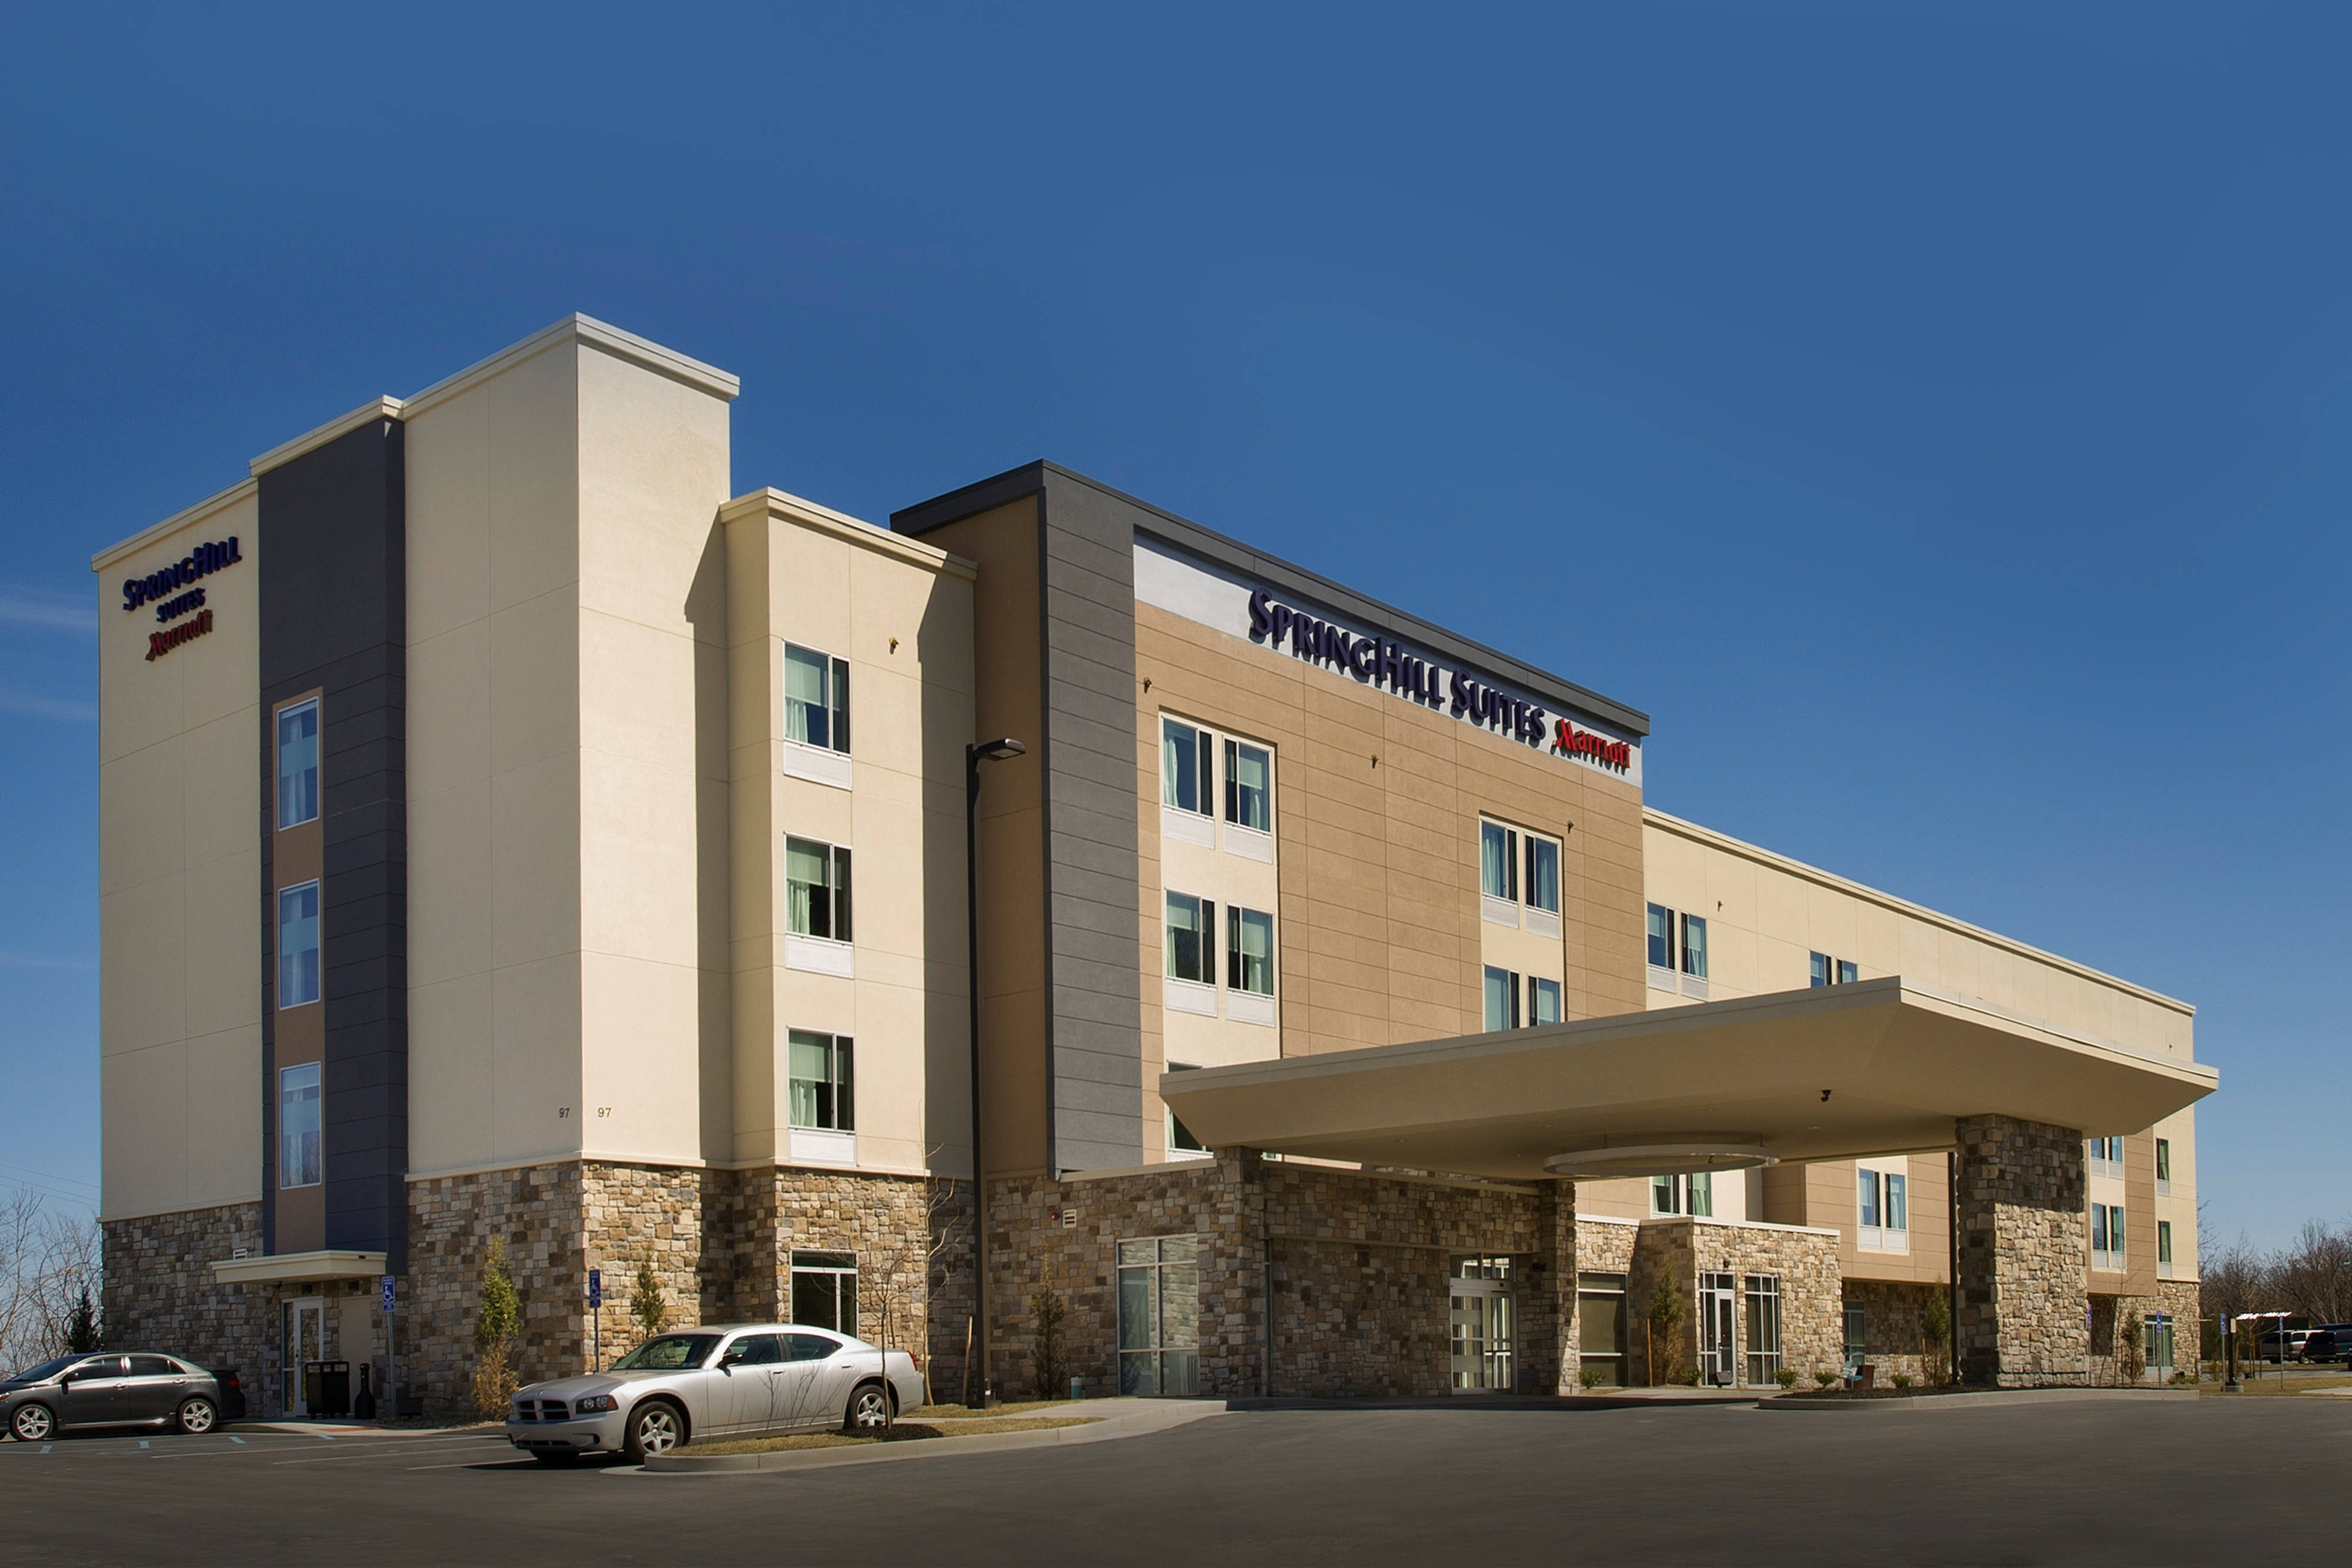 New SpringHill Suites Bridgeport Hotel